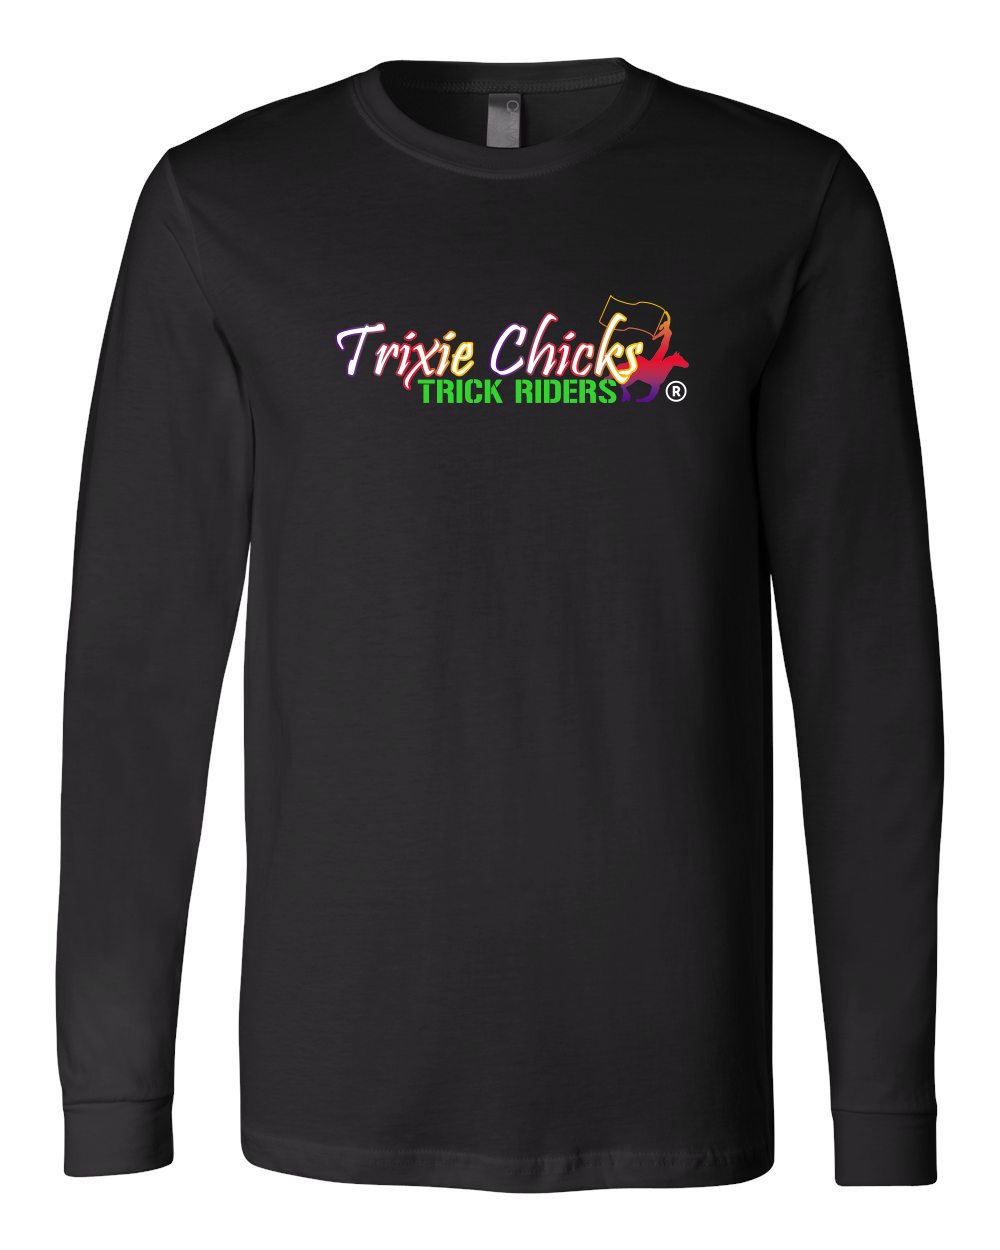 trixie-chicks-jersey-long-sleeve-tee_image